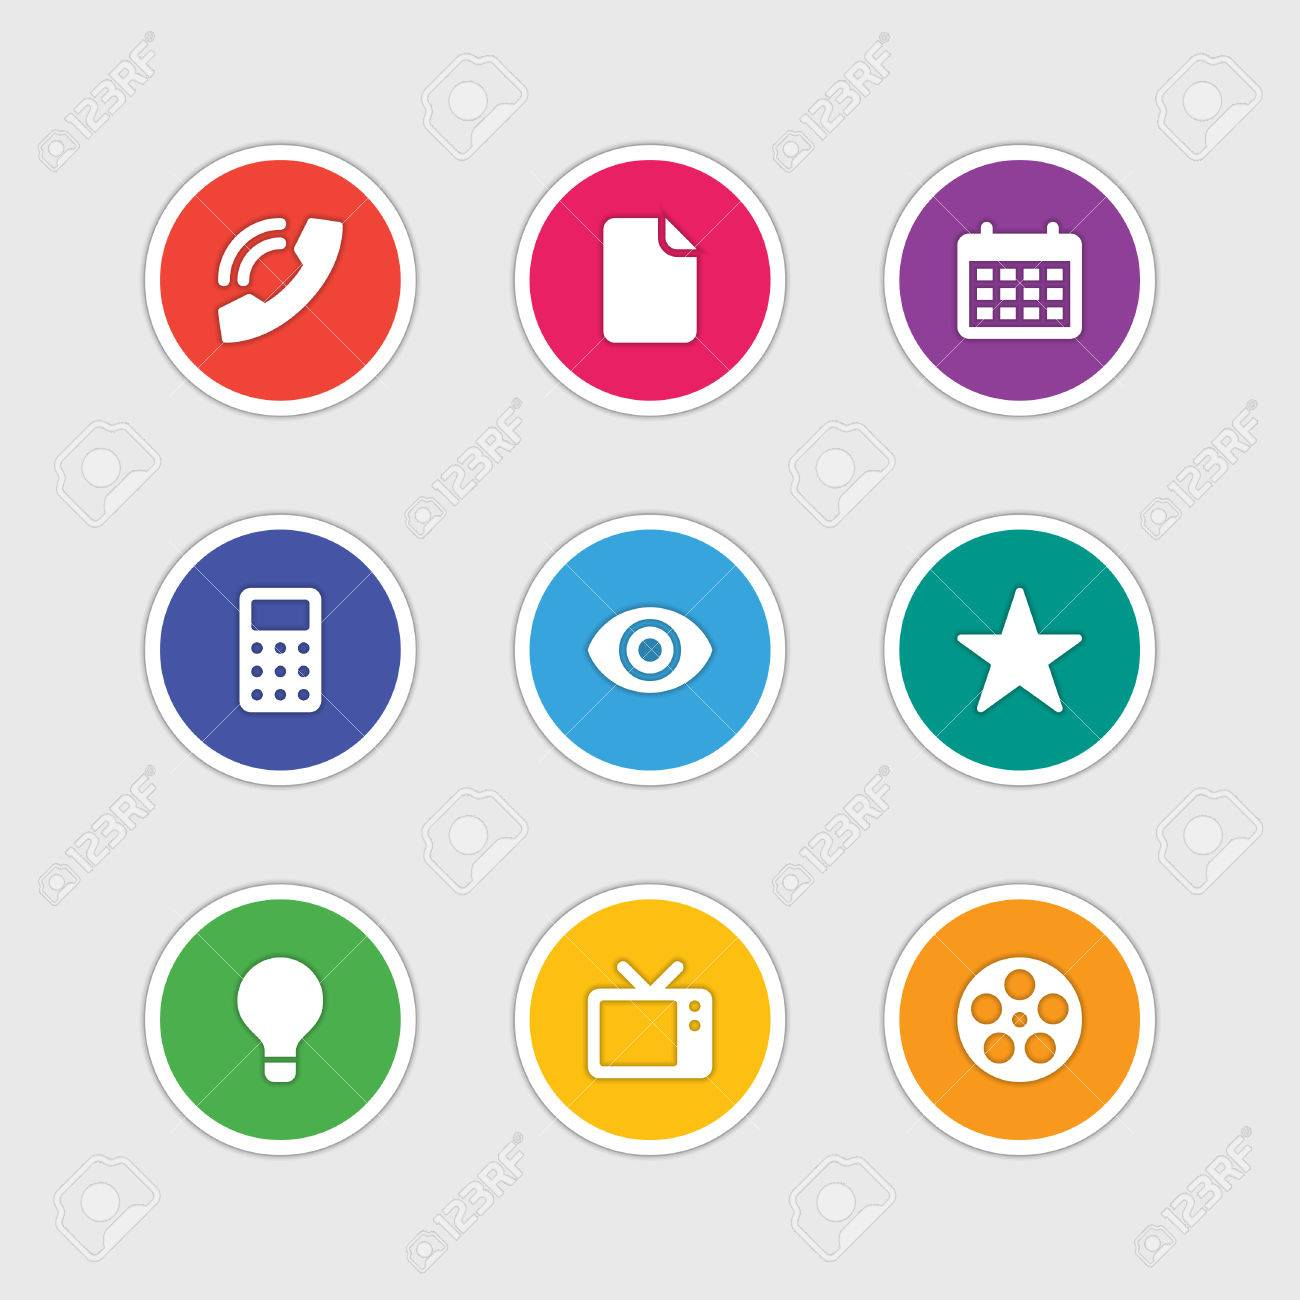 Design Sign Document And Material Symbols Style Icons Vector zMqVSUp